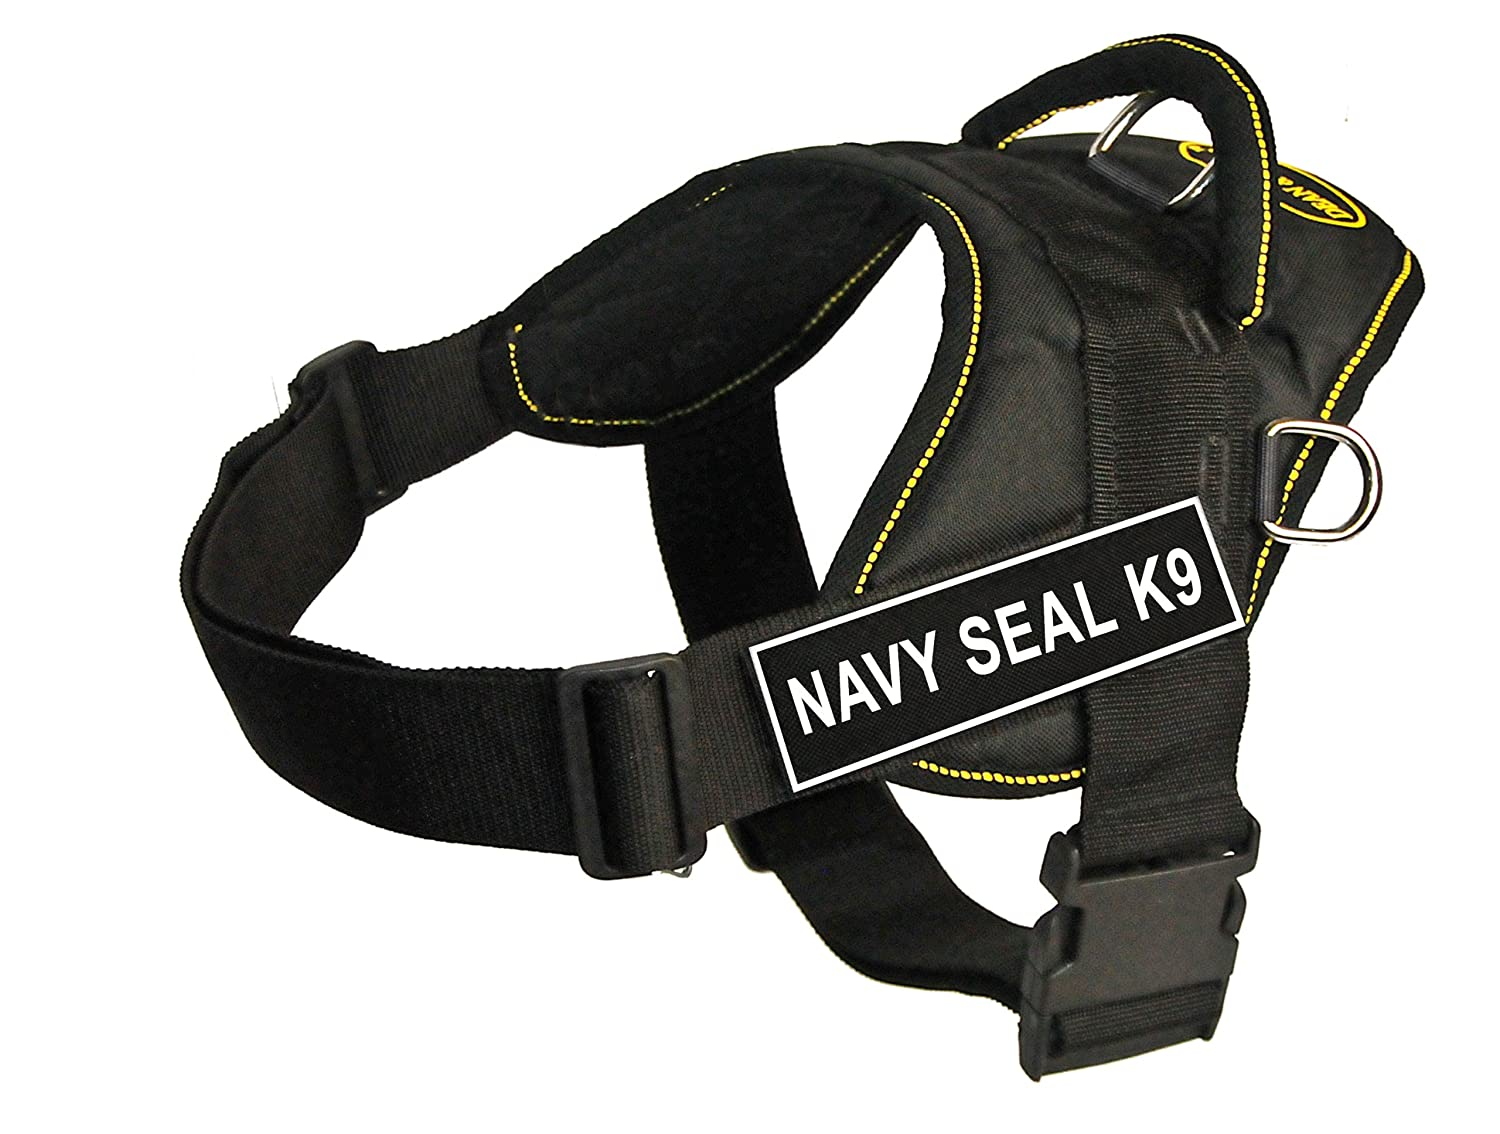 Dean & Tyler Fun Works 22-Inch to 27-Inch Pet Harness, Small, Navy Seal K9, Black with Yellow Trim